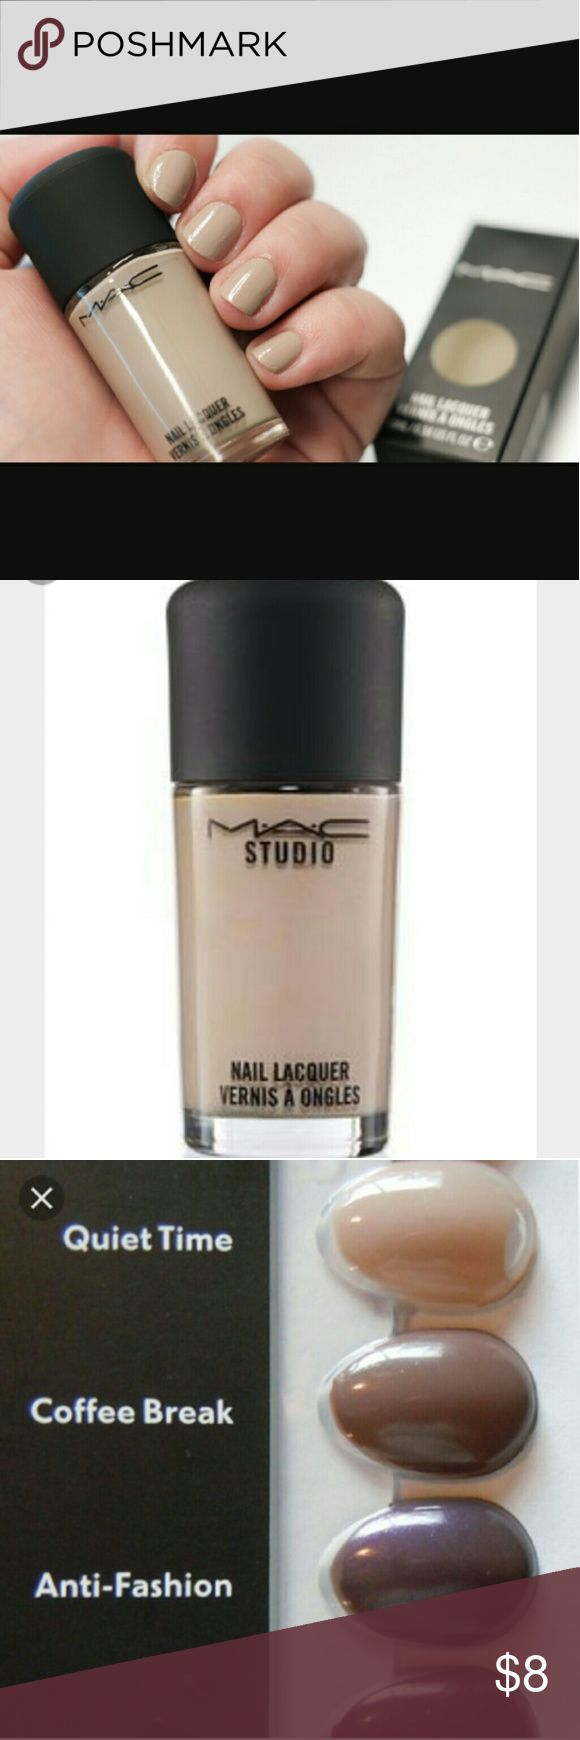 *1 left Mac Nail Lacquer Description New in Box  Authentic mac nail lacquer   Color:Quiet time  No pp No other sites  Price is firm MAC Cosmetics Makeup